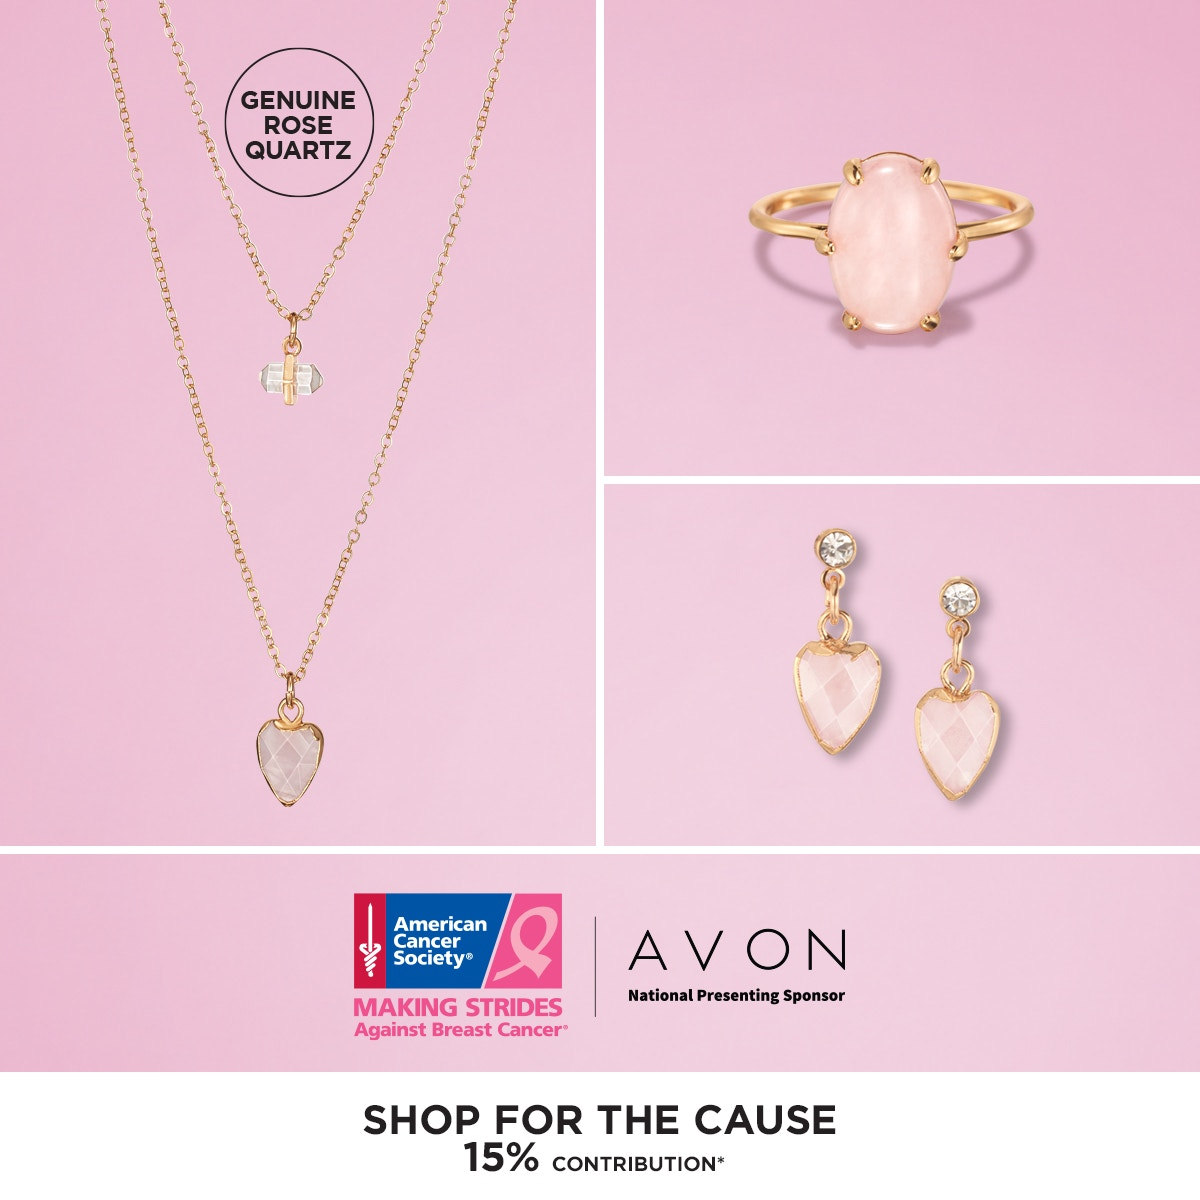 Adorn your décolletage with this gorgeous set of layered necklaces, featuring genuine rose quartz charms and dainty goldtone chains. It's a simple, yet pretty way to amp up any look.